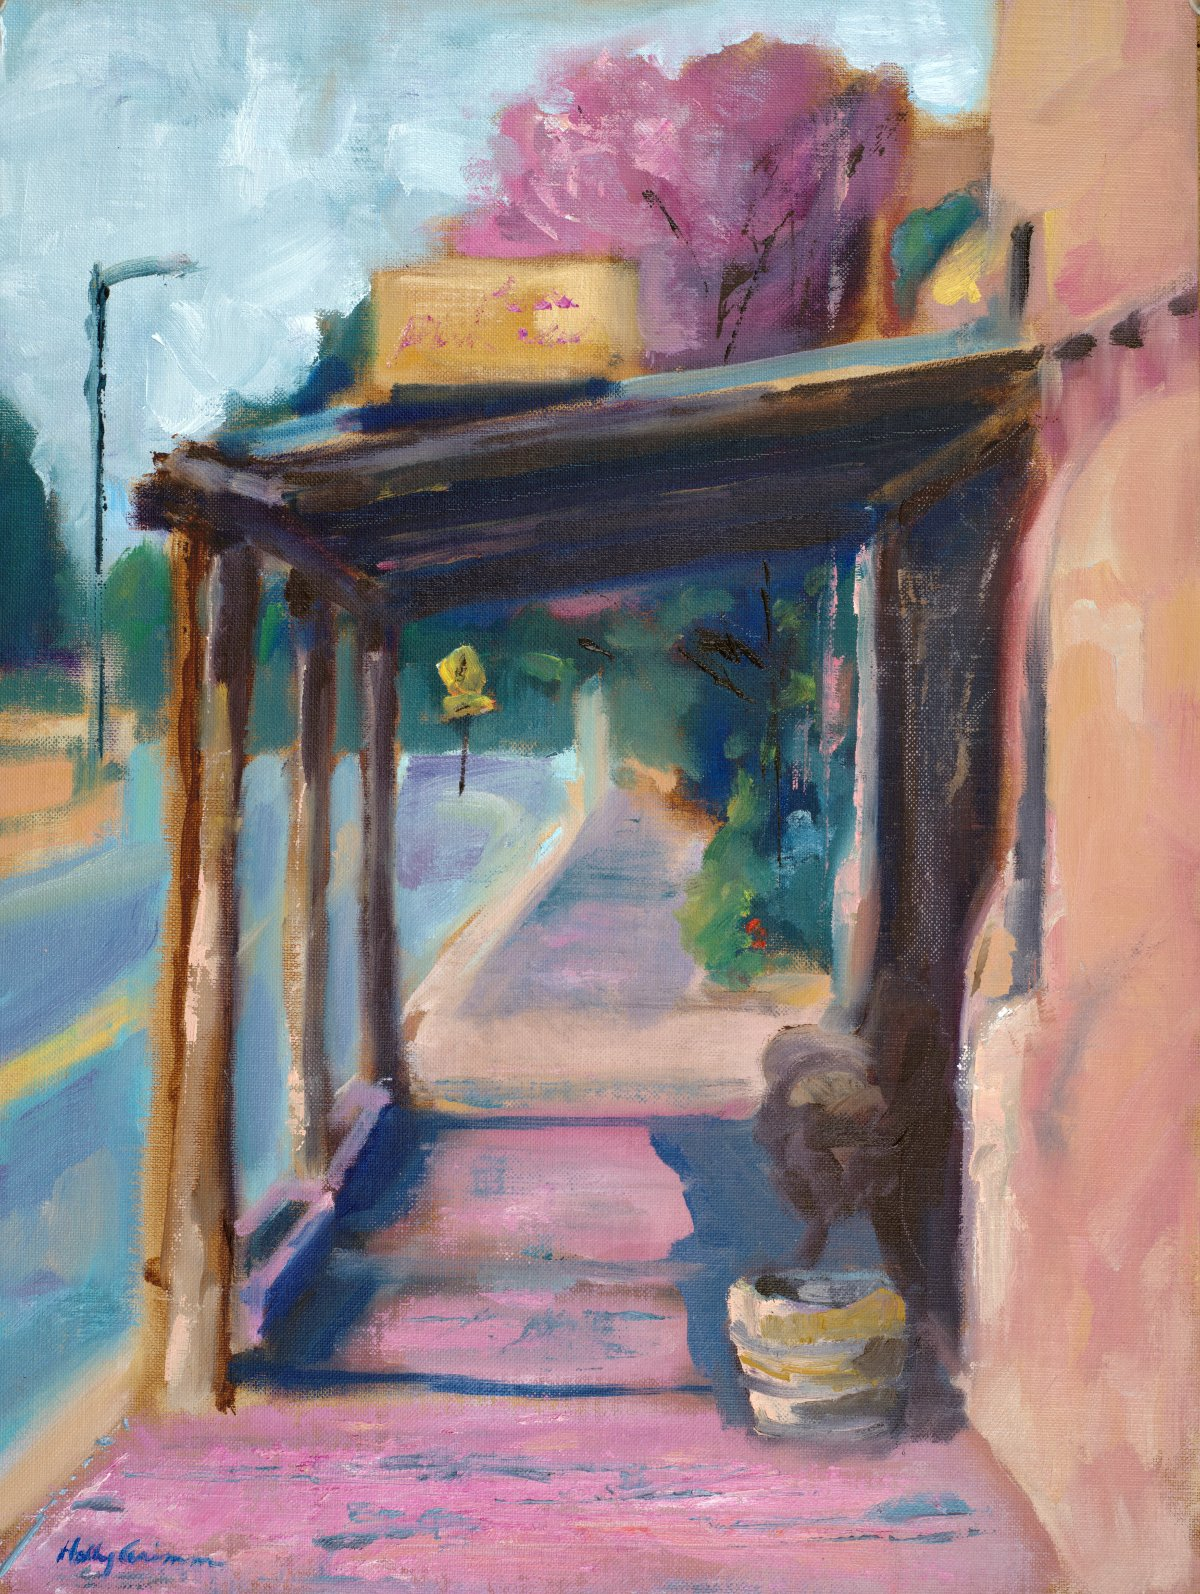 Plein Air, Pink Adobe, Apr 15 '16